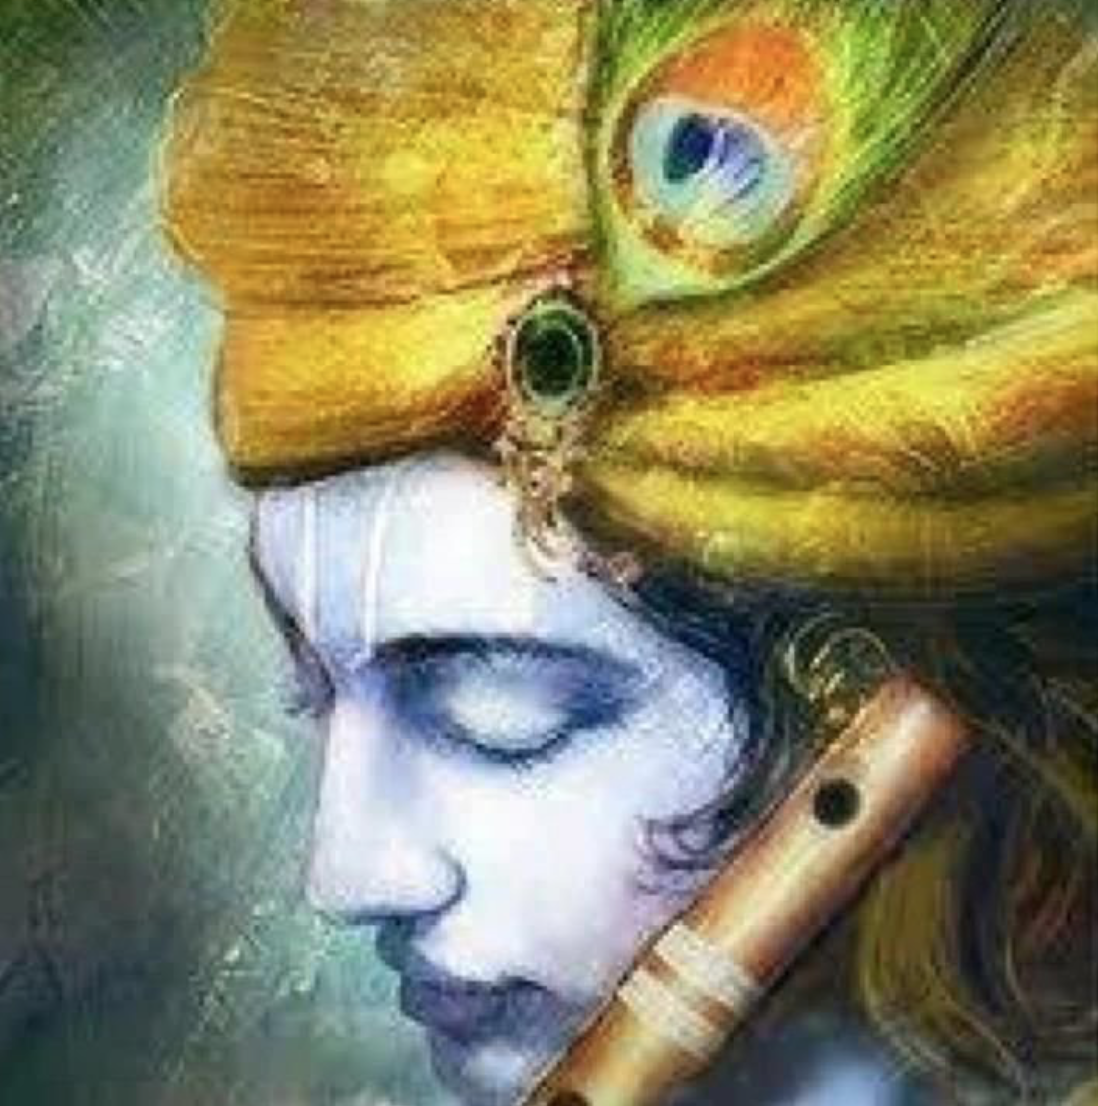 krishna with bamboo flute